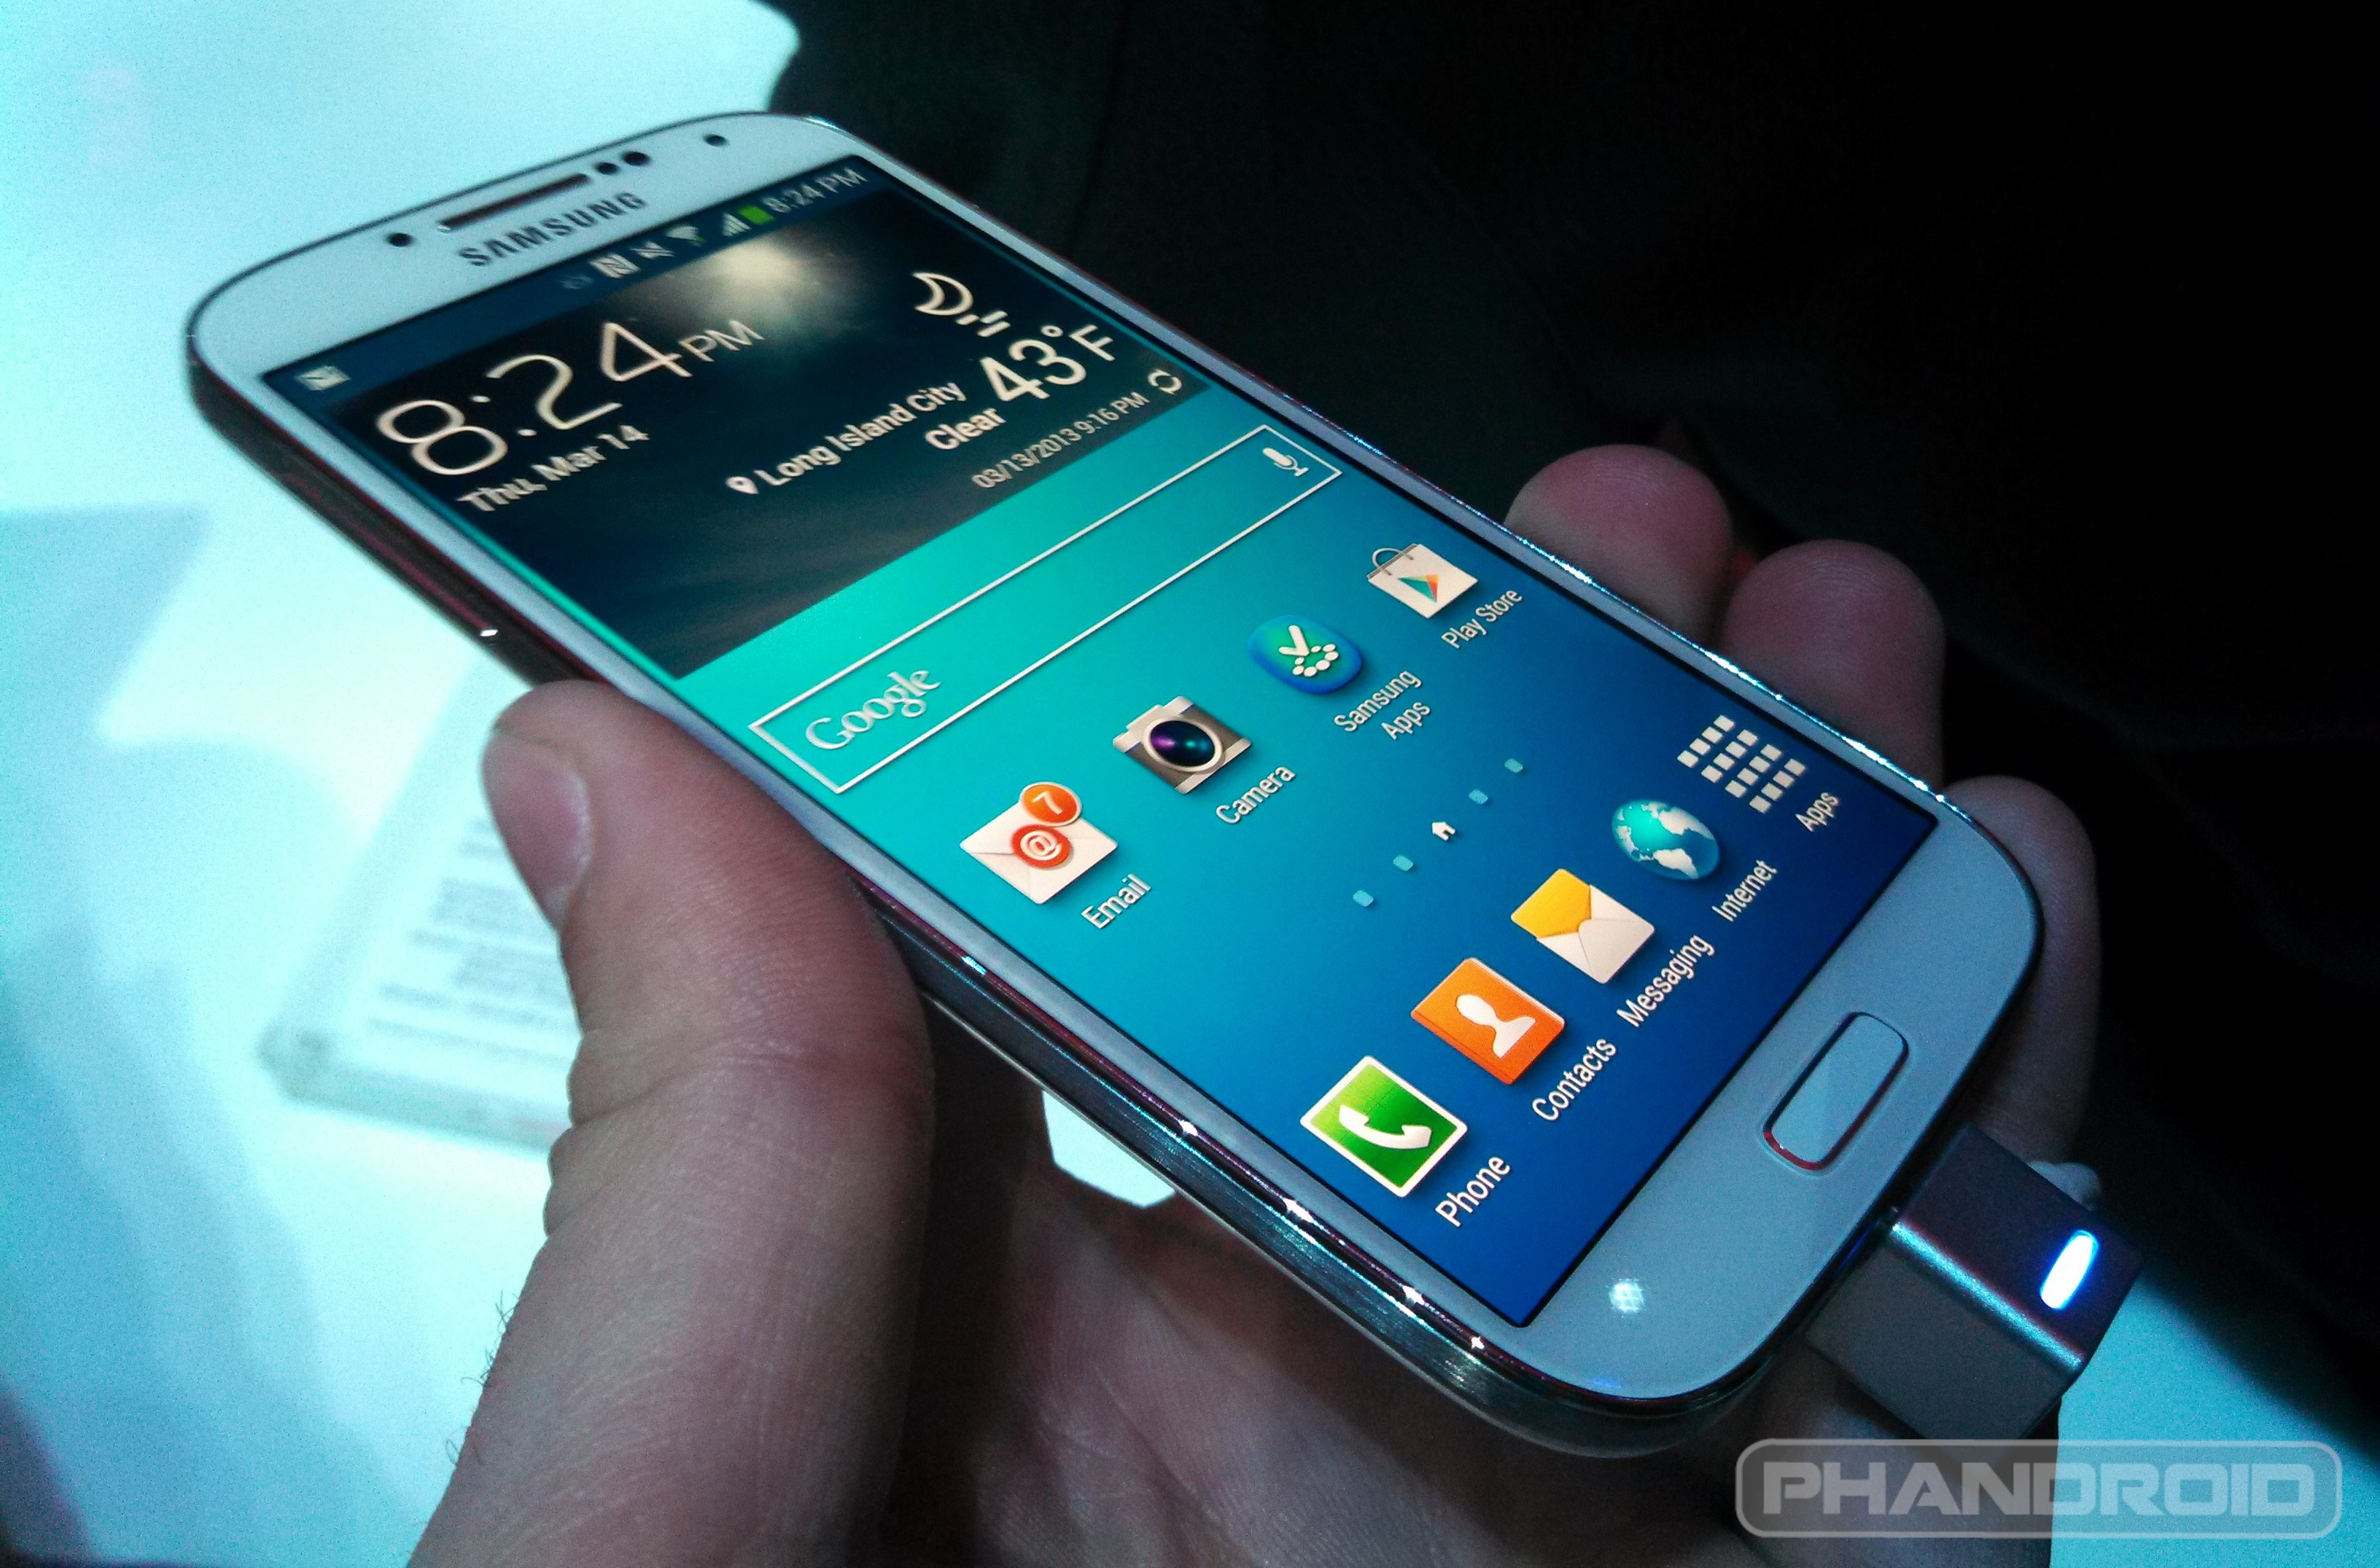 Sprint getting Galaxy S4 April 27th, T-Mobile April 24th